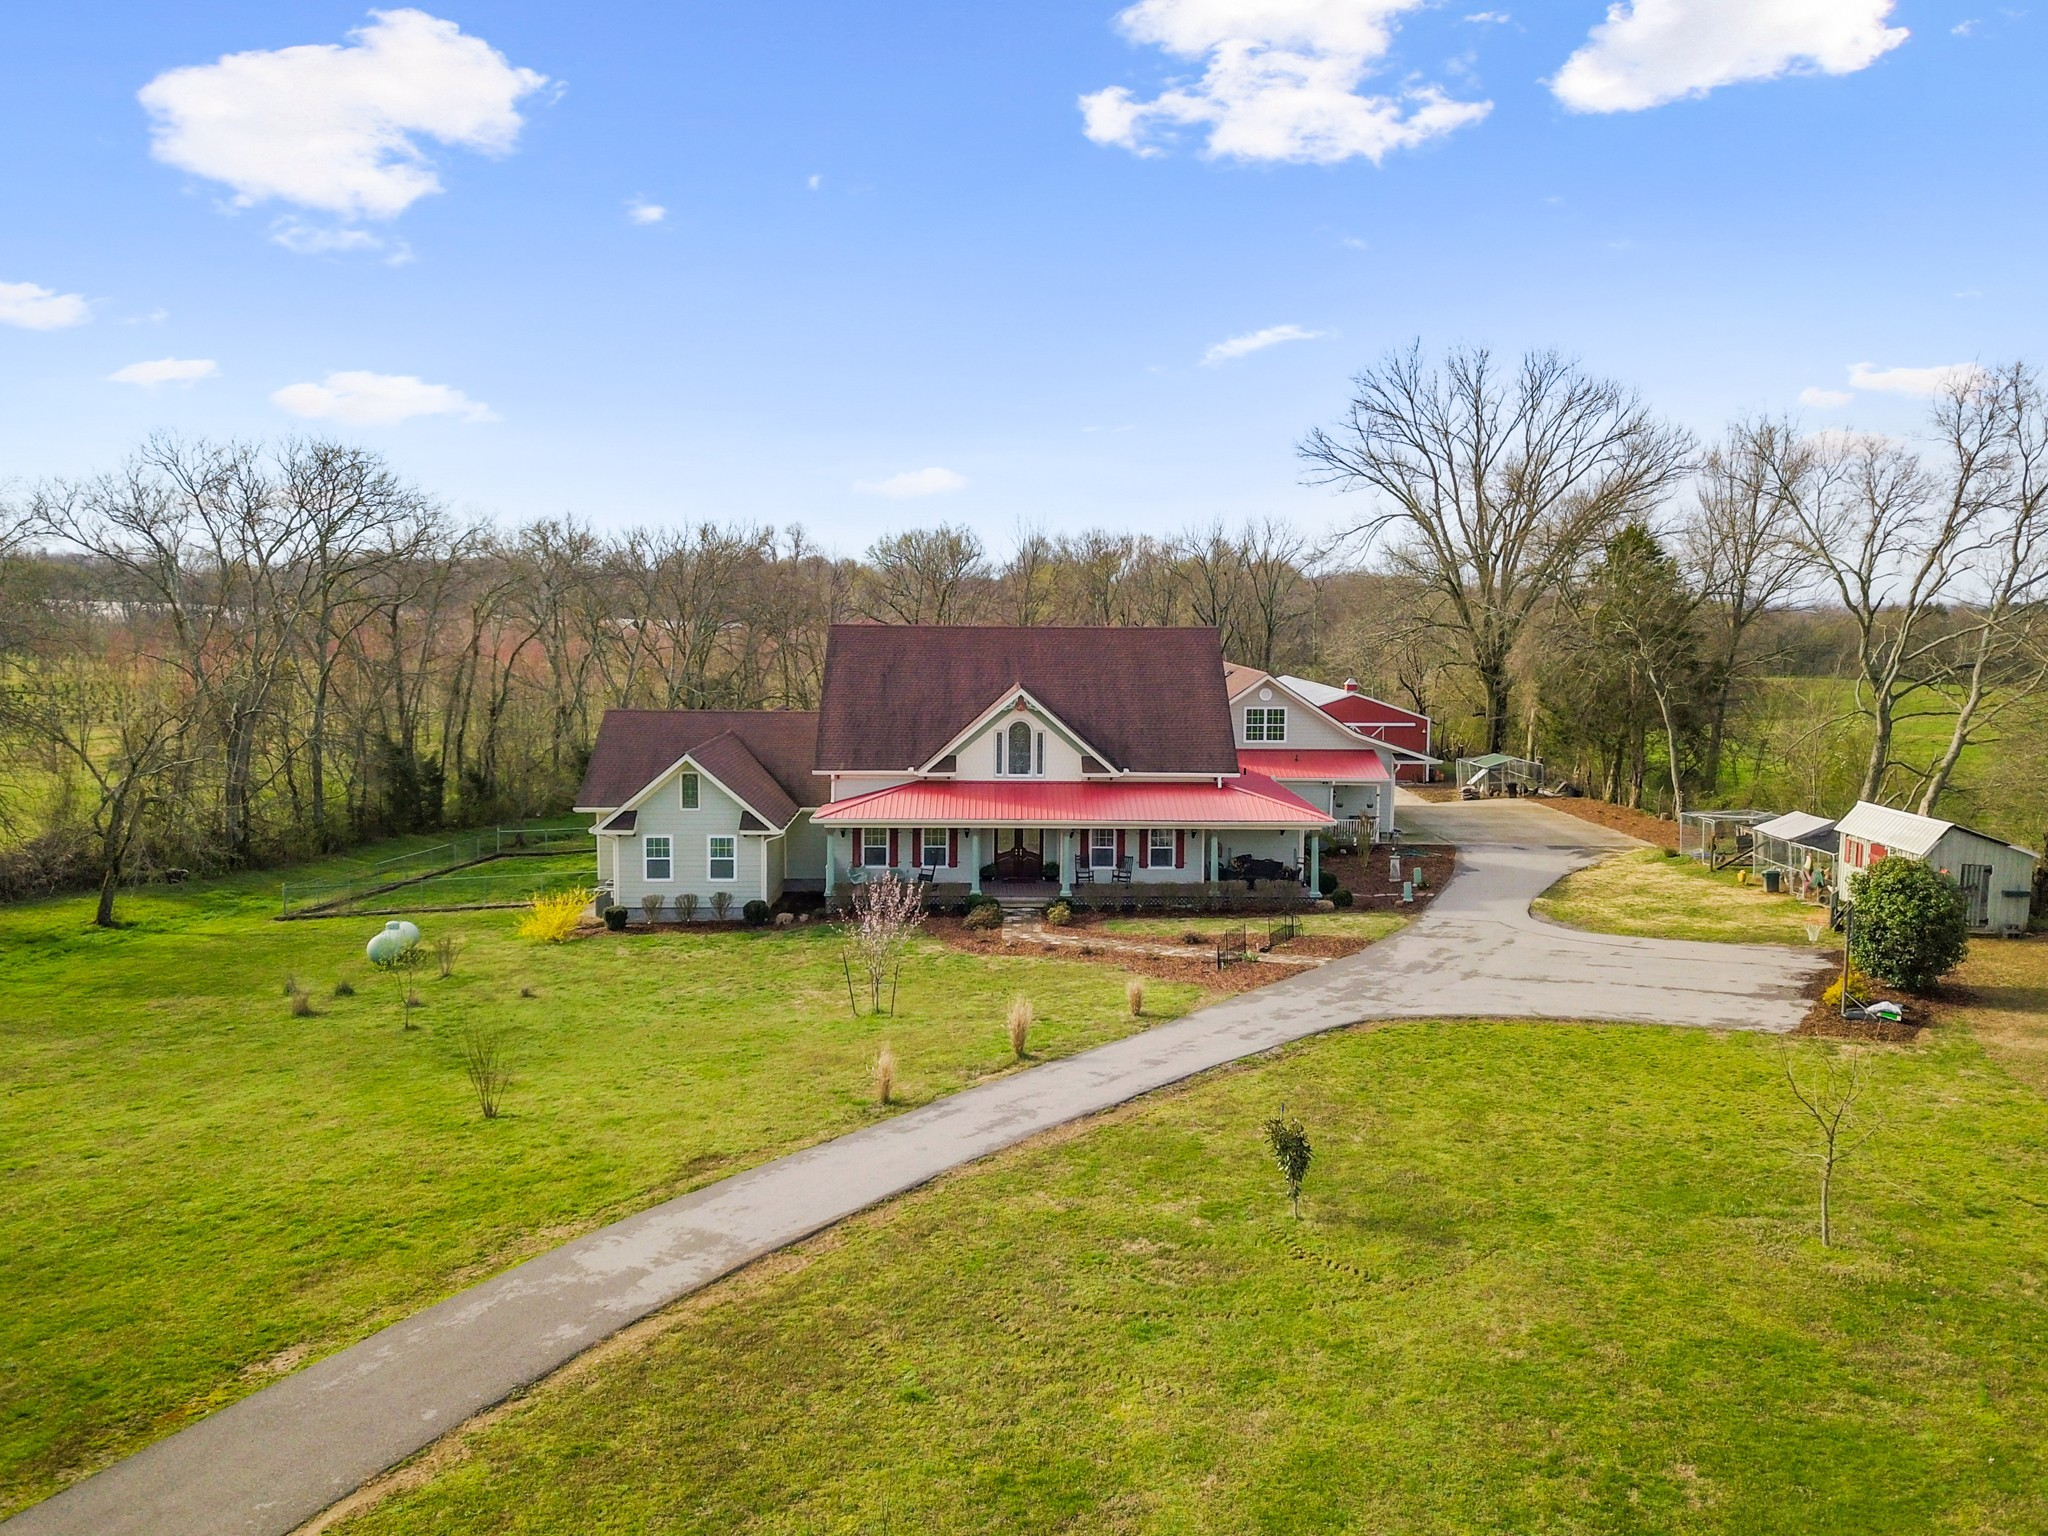 2833 Thompson Station Rd, E Property Photo - Thompsons Station, TN real estate listing